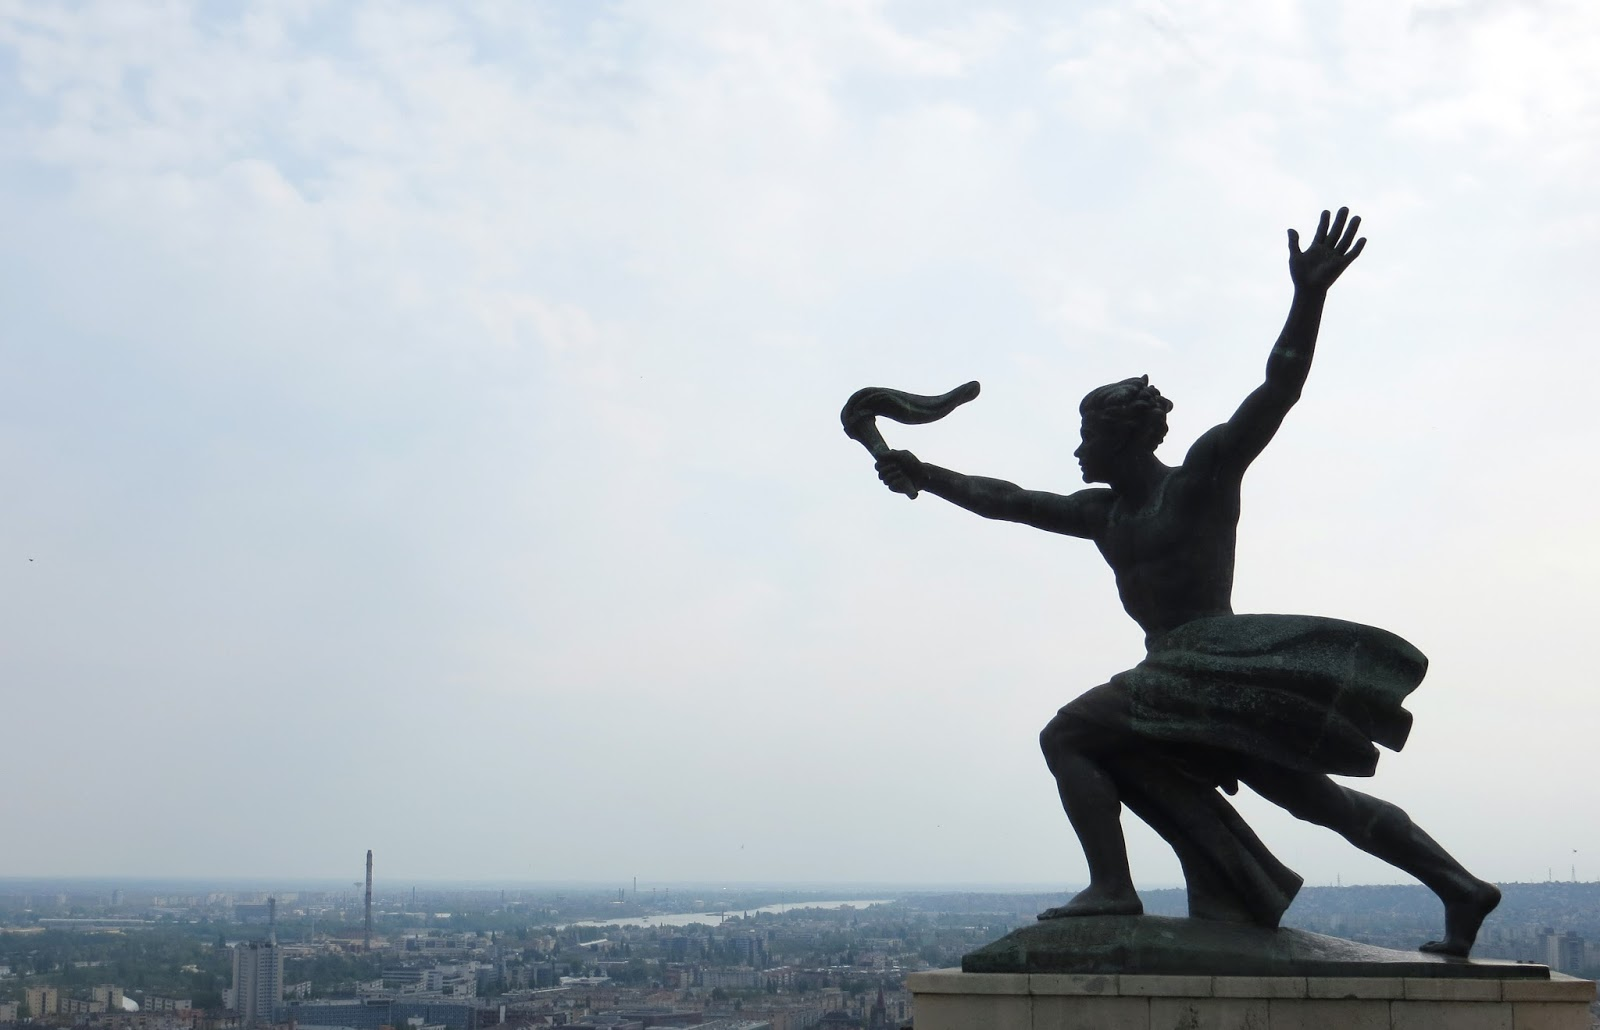 budapest, communism, statue, eastern Europe